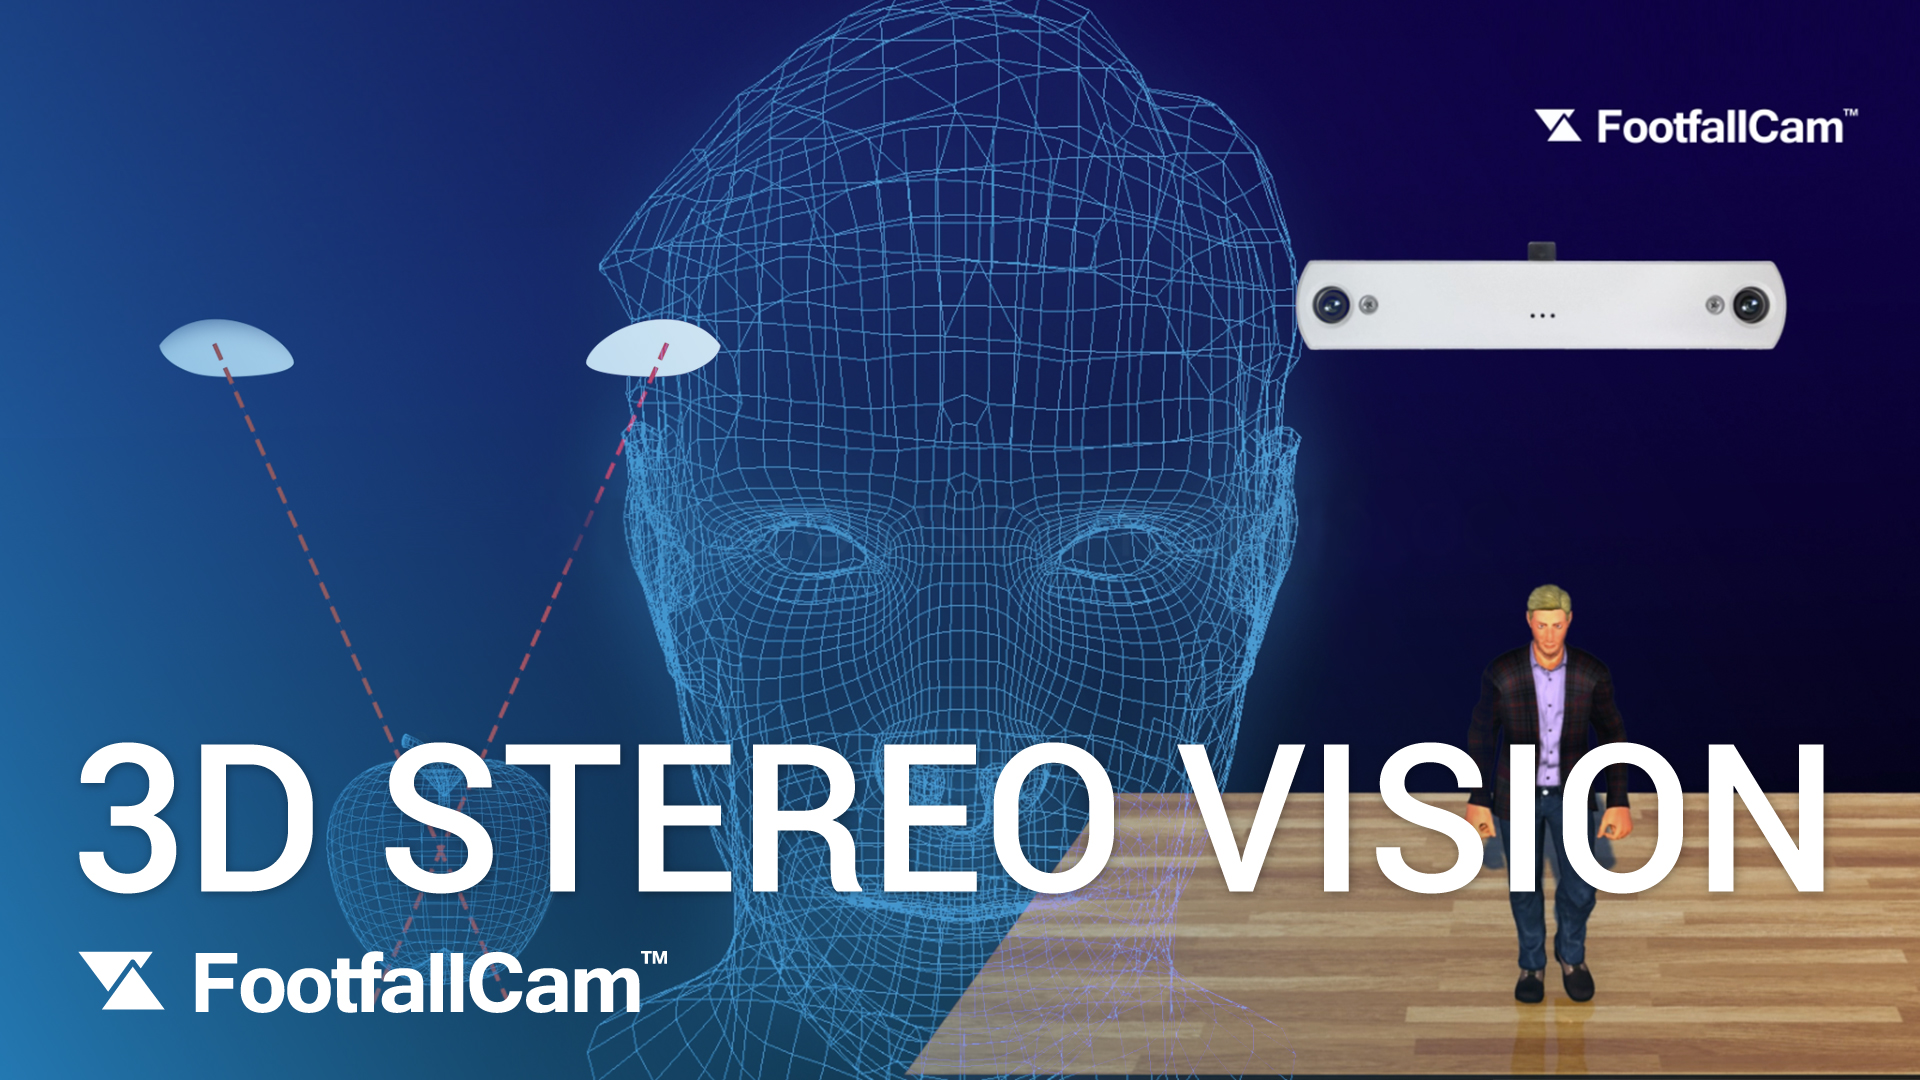 3D Stereo Vision